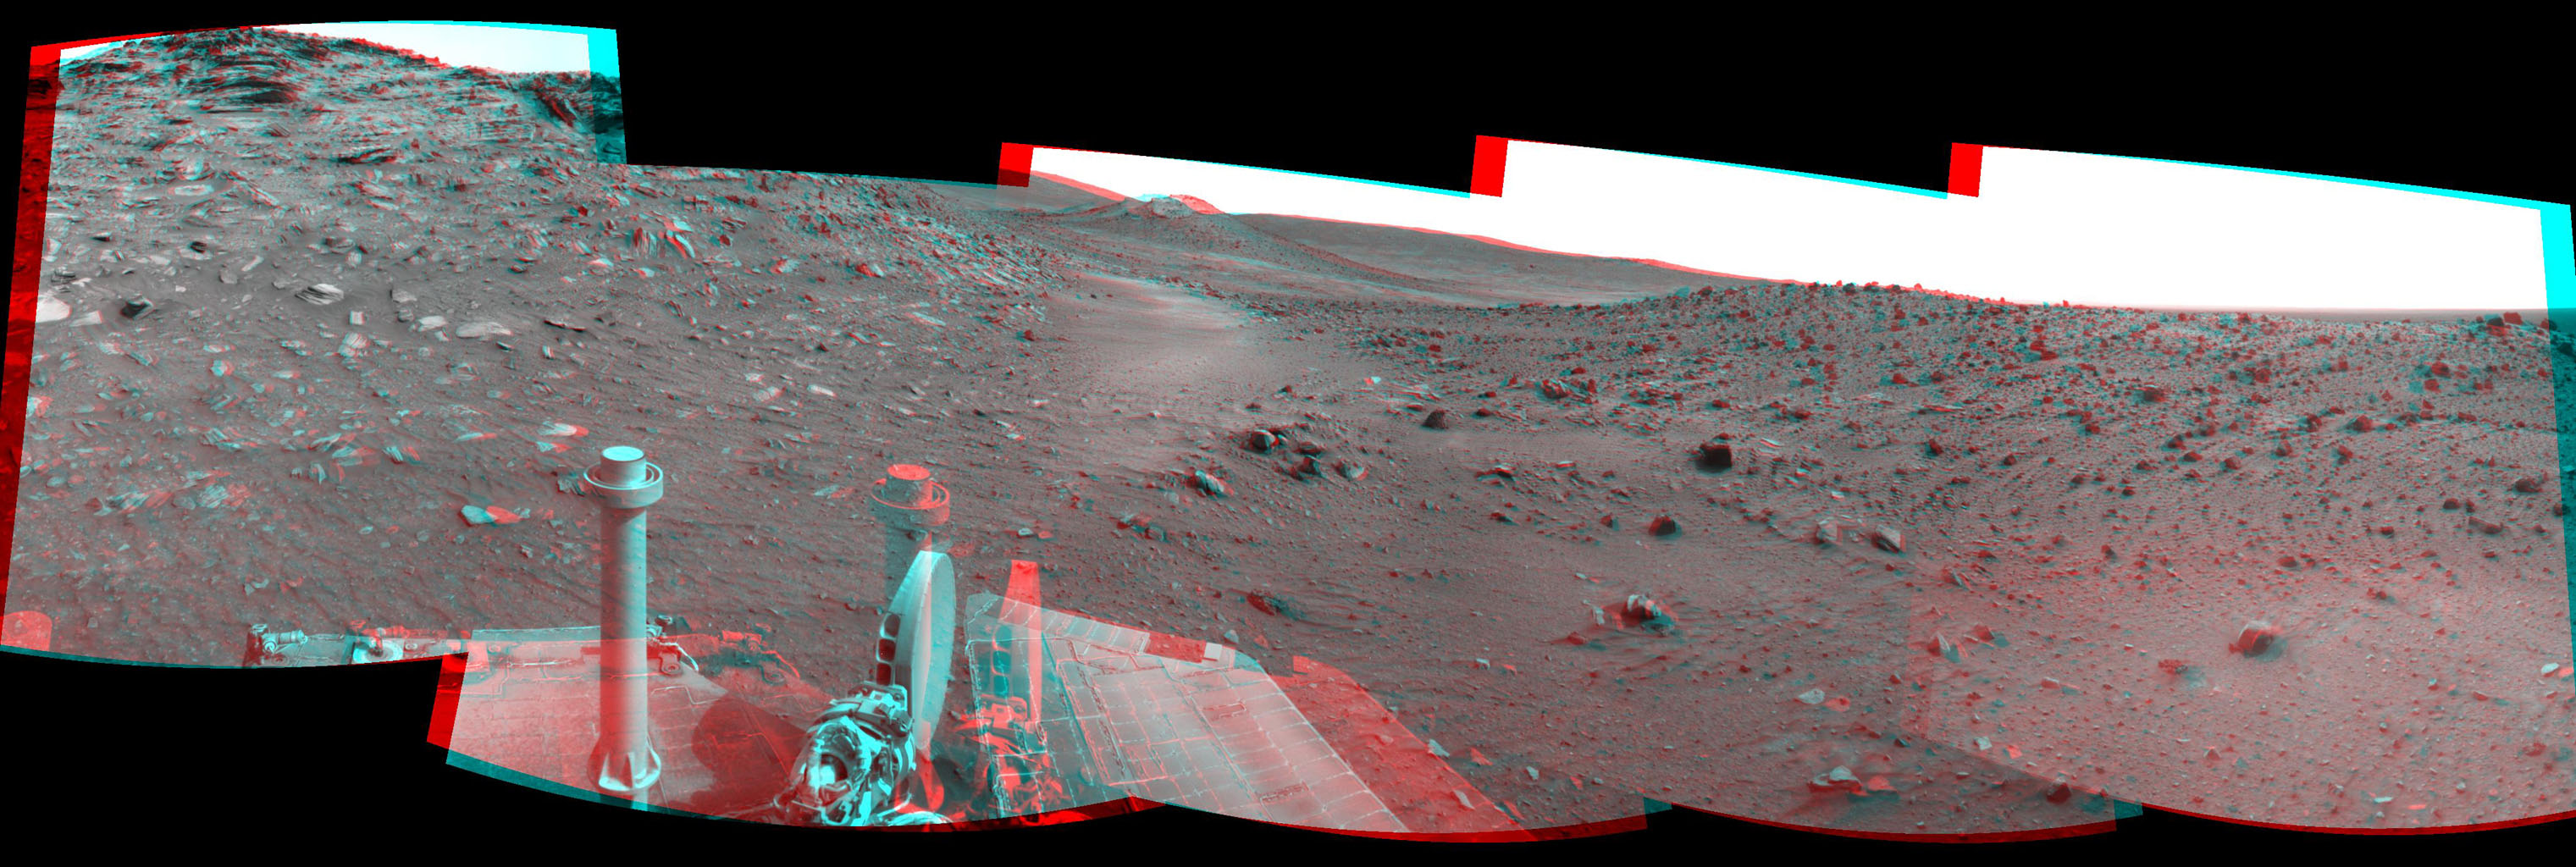 This stereo scene combines frames taken by the navigation camera on NASA's Mars Exploration Rover Spirit during the 1,871st Martian day, or sol, of Spirit's mission on Mars (April 8, 2009). You will need 3-D glasses to view this image.